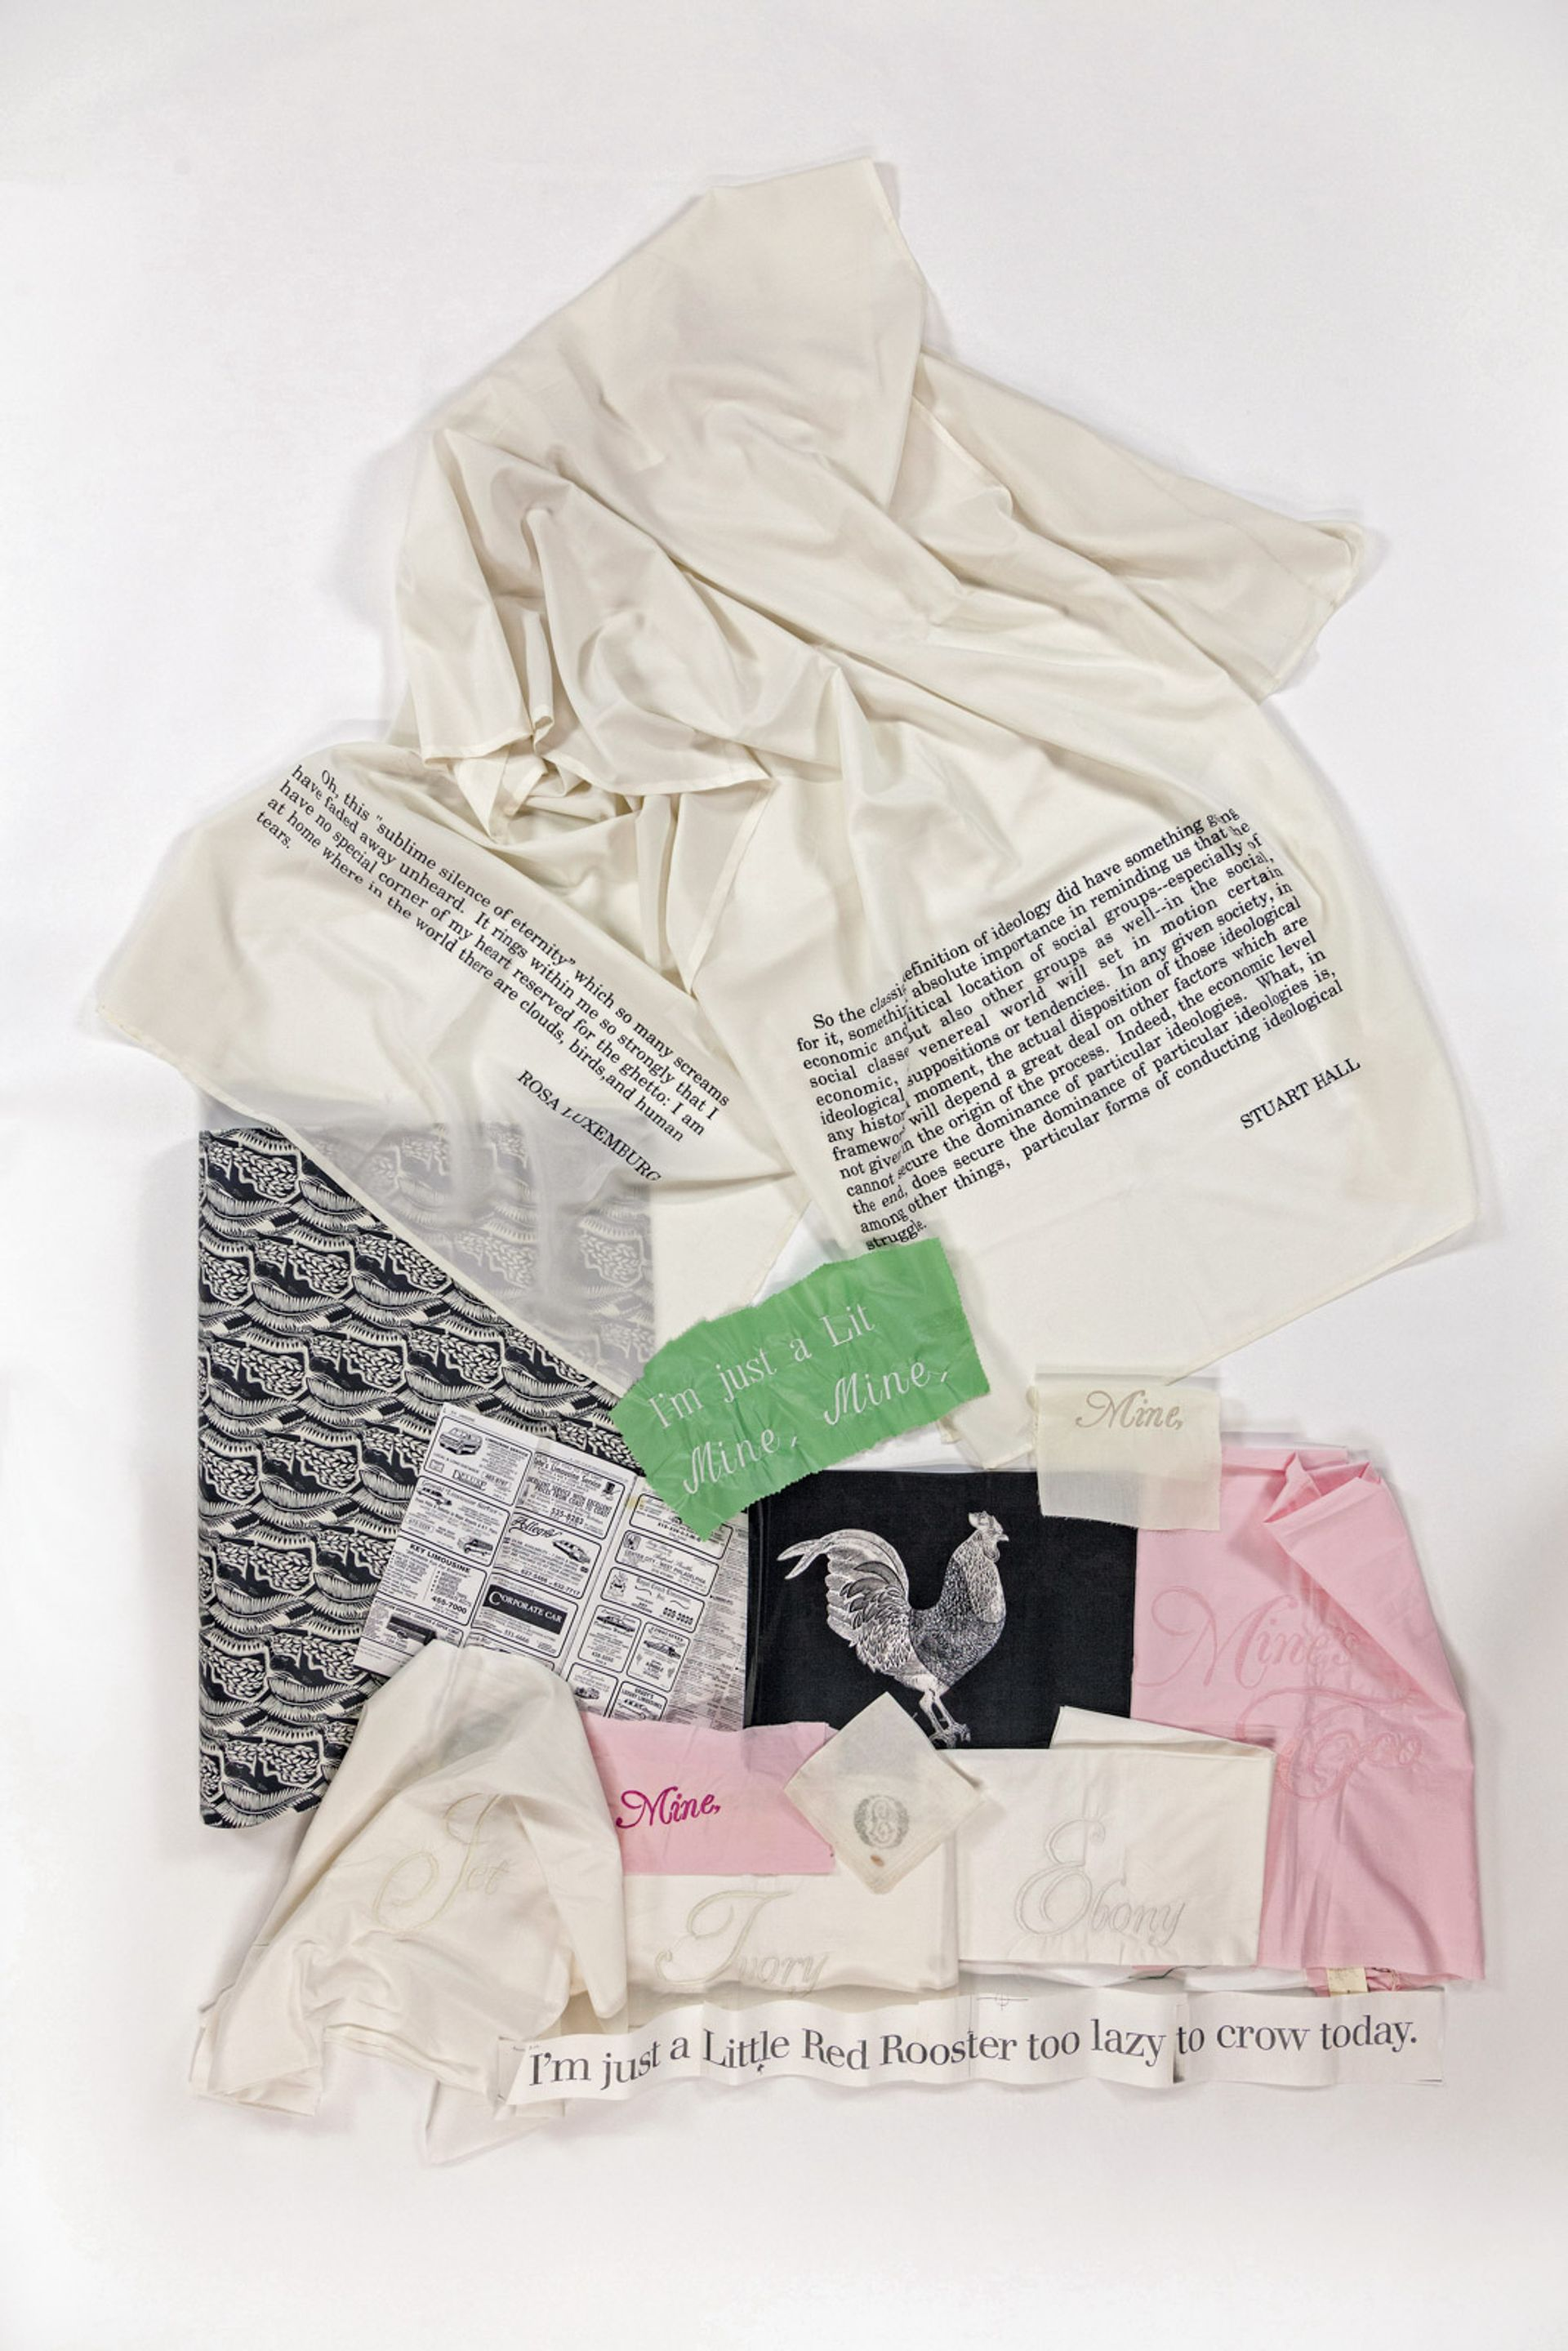 Work in progress: items from Carrie Mae Weems' box of materials Carlos Avendaño